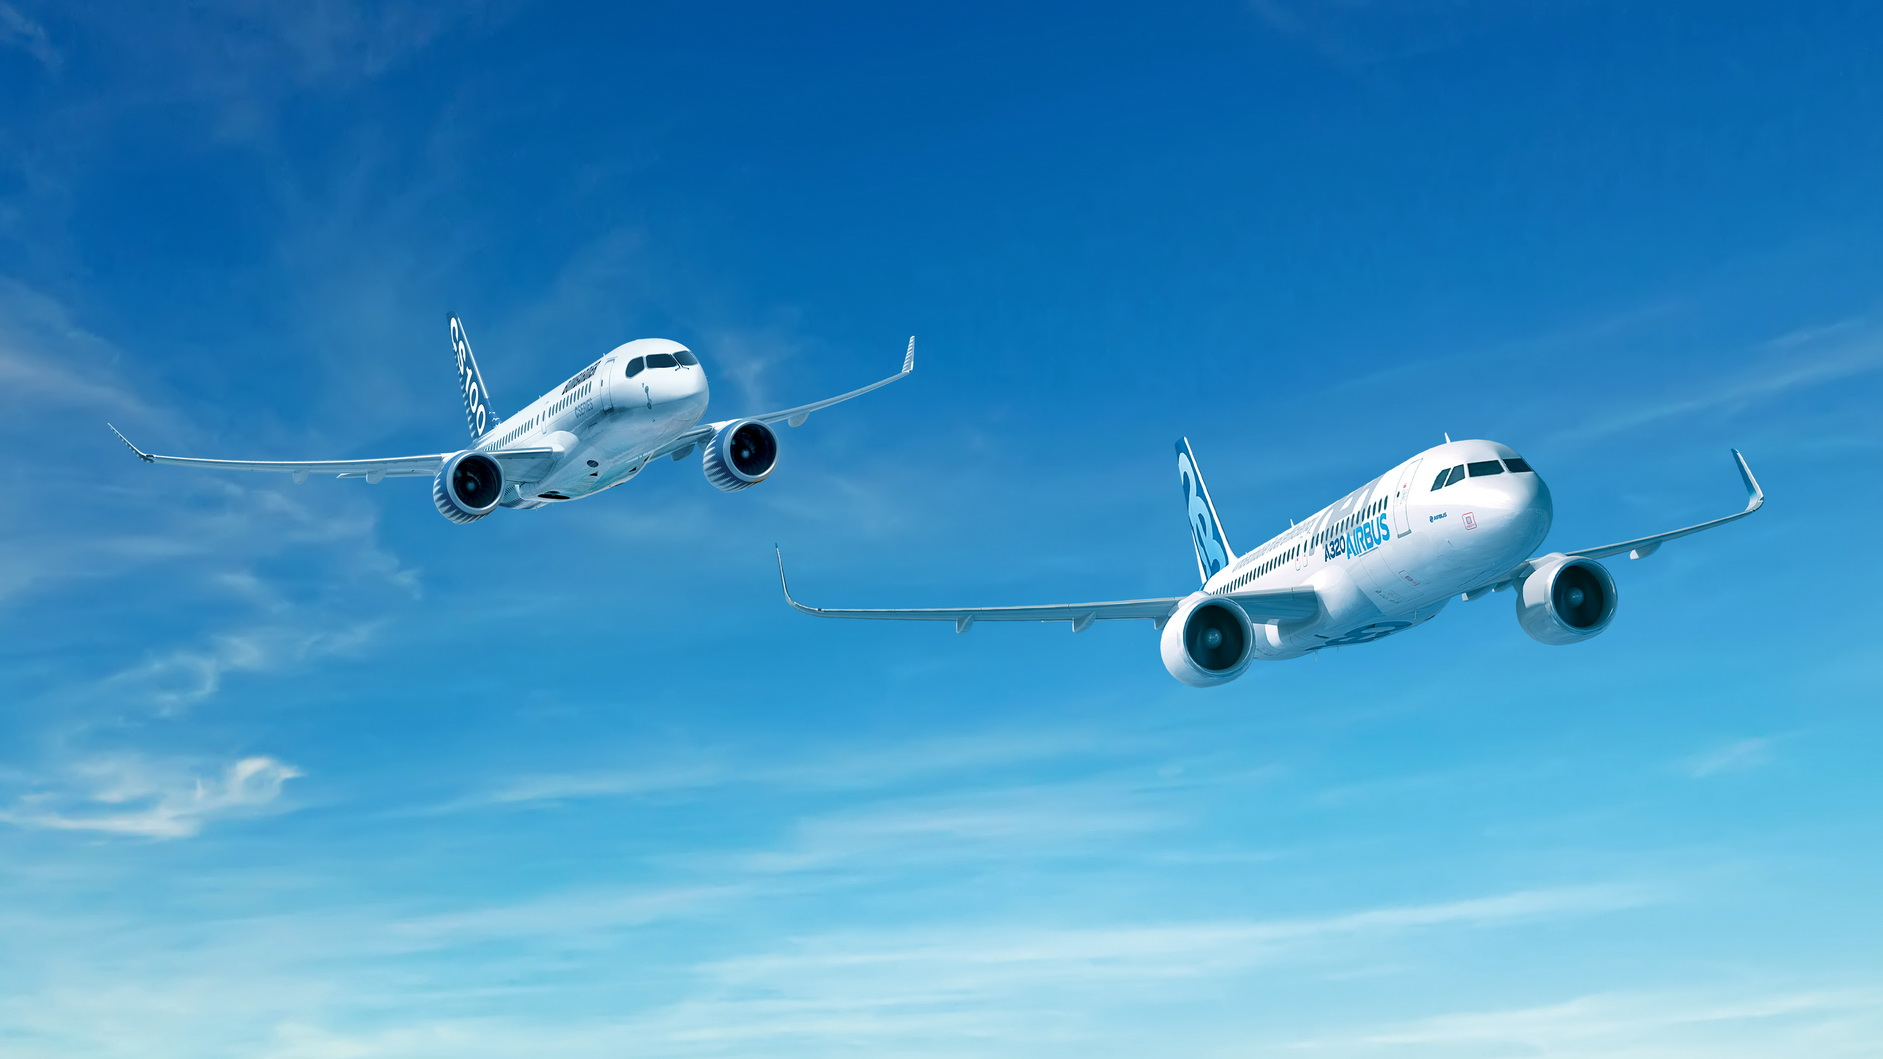 With the new agreement between Airbus and Bombardier, Airbus will provide procurement, sales and marketing, and customer support expertise to the C Series Aircraft Limited Partnership. Airbus Photo